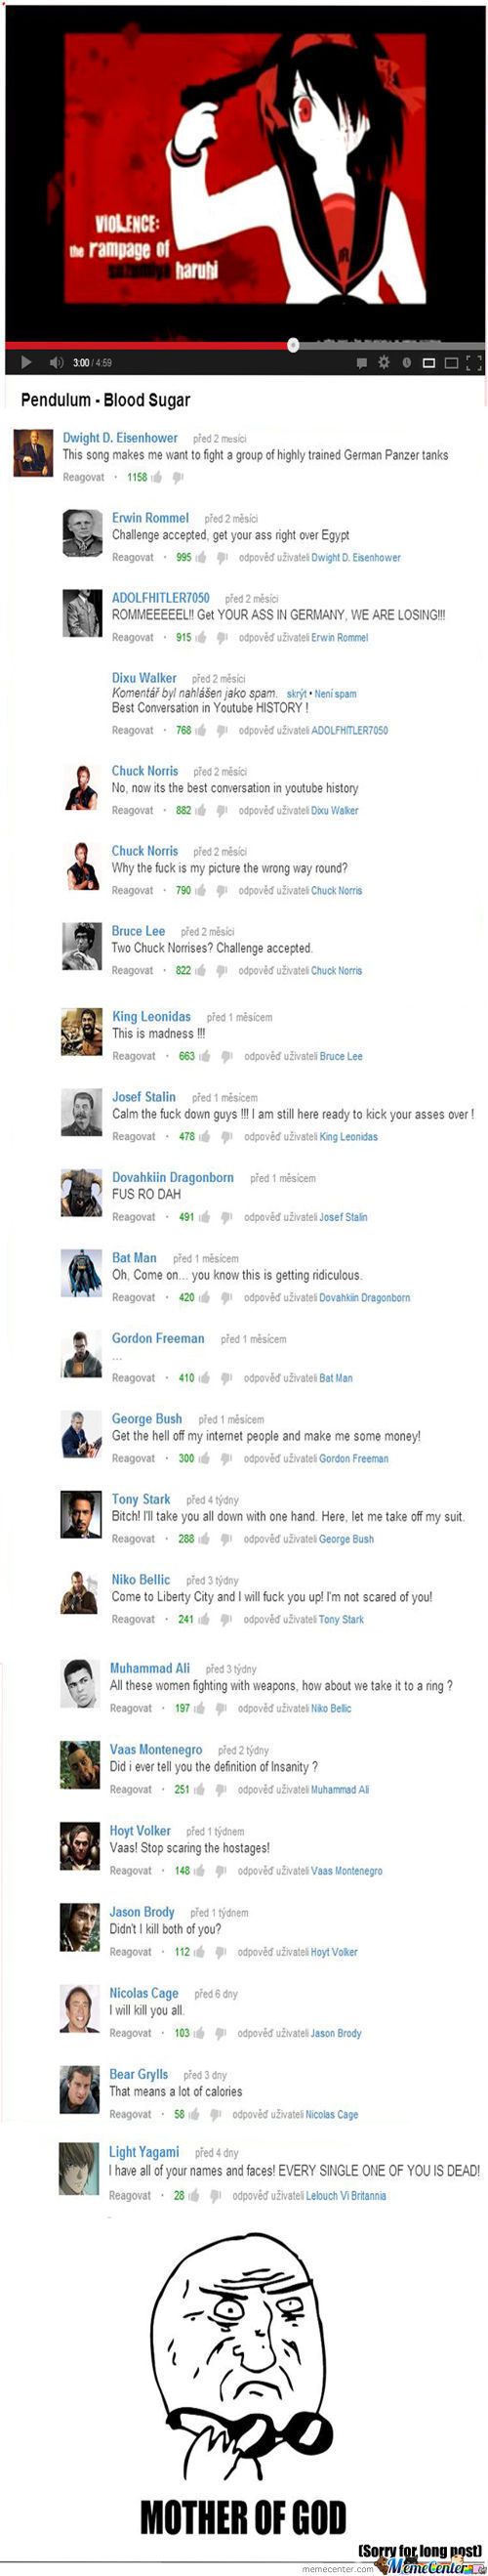 Most Epic Conversation Of Youtube History (Fixed)